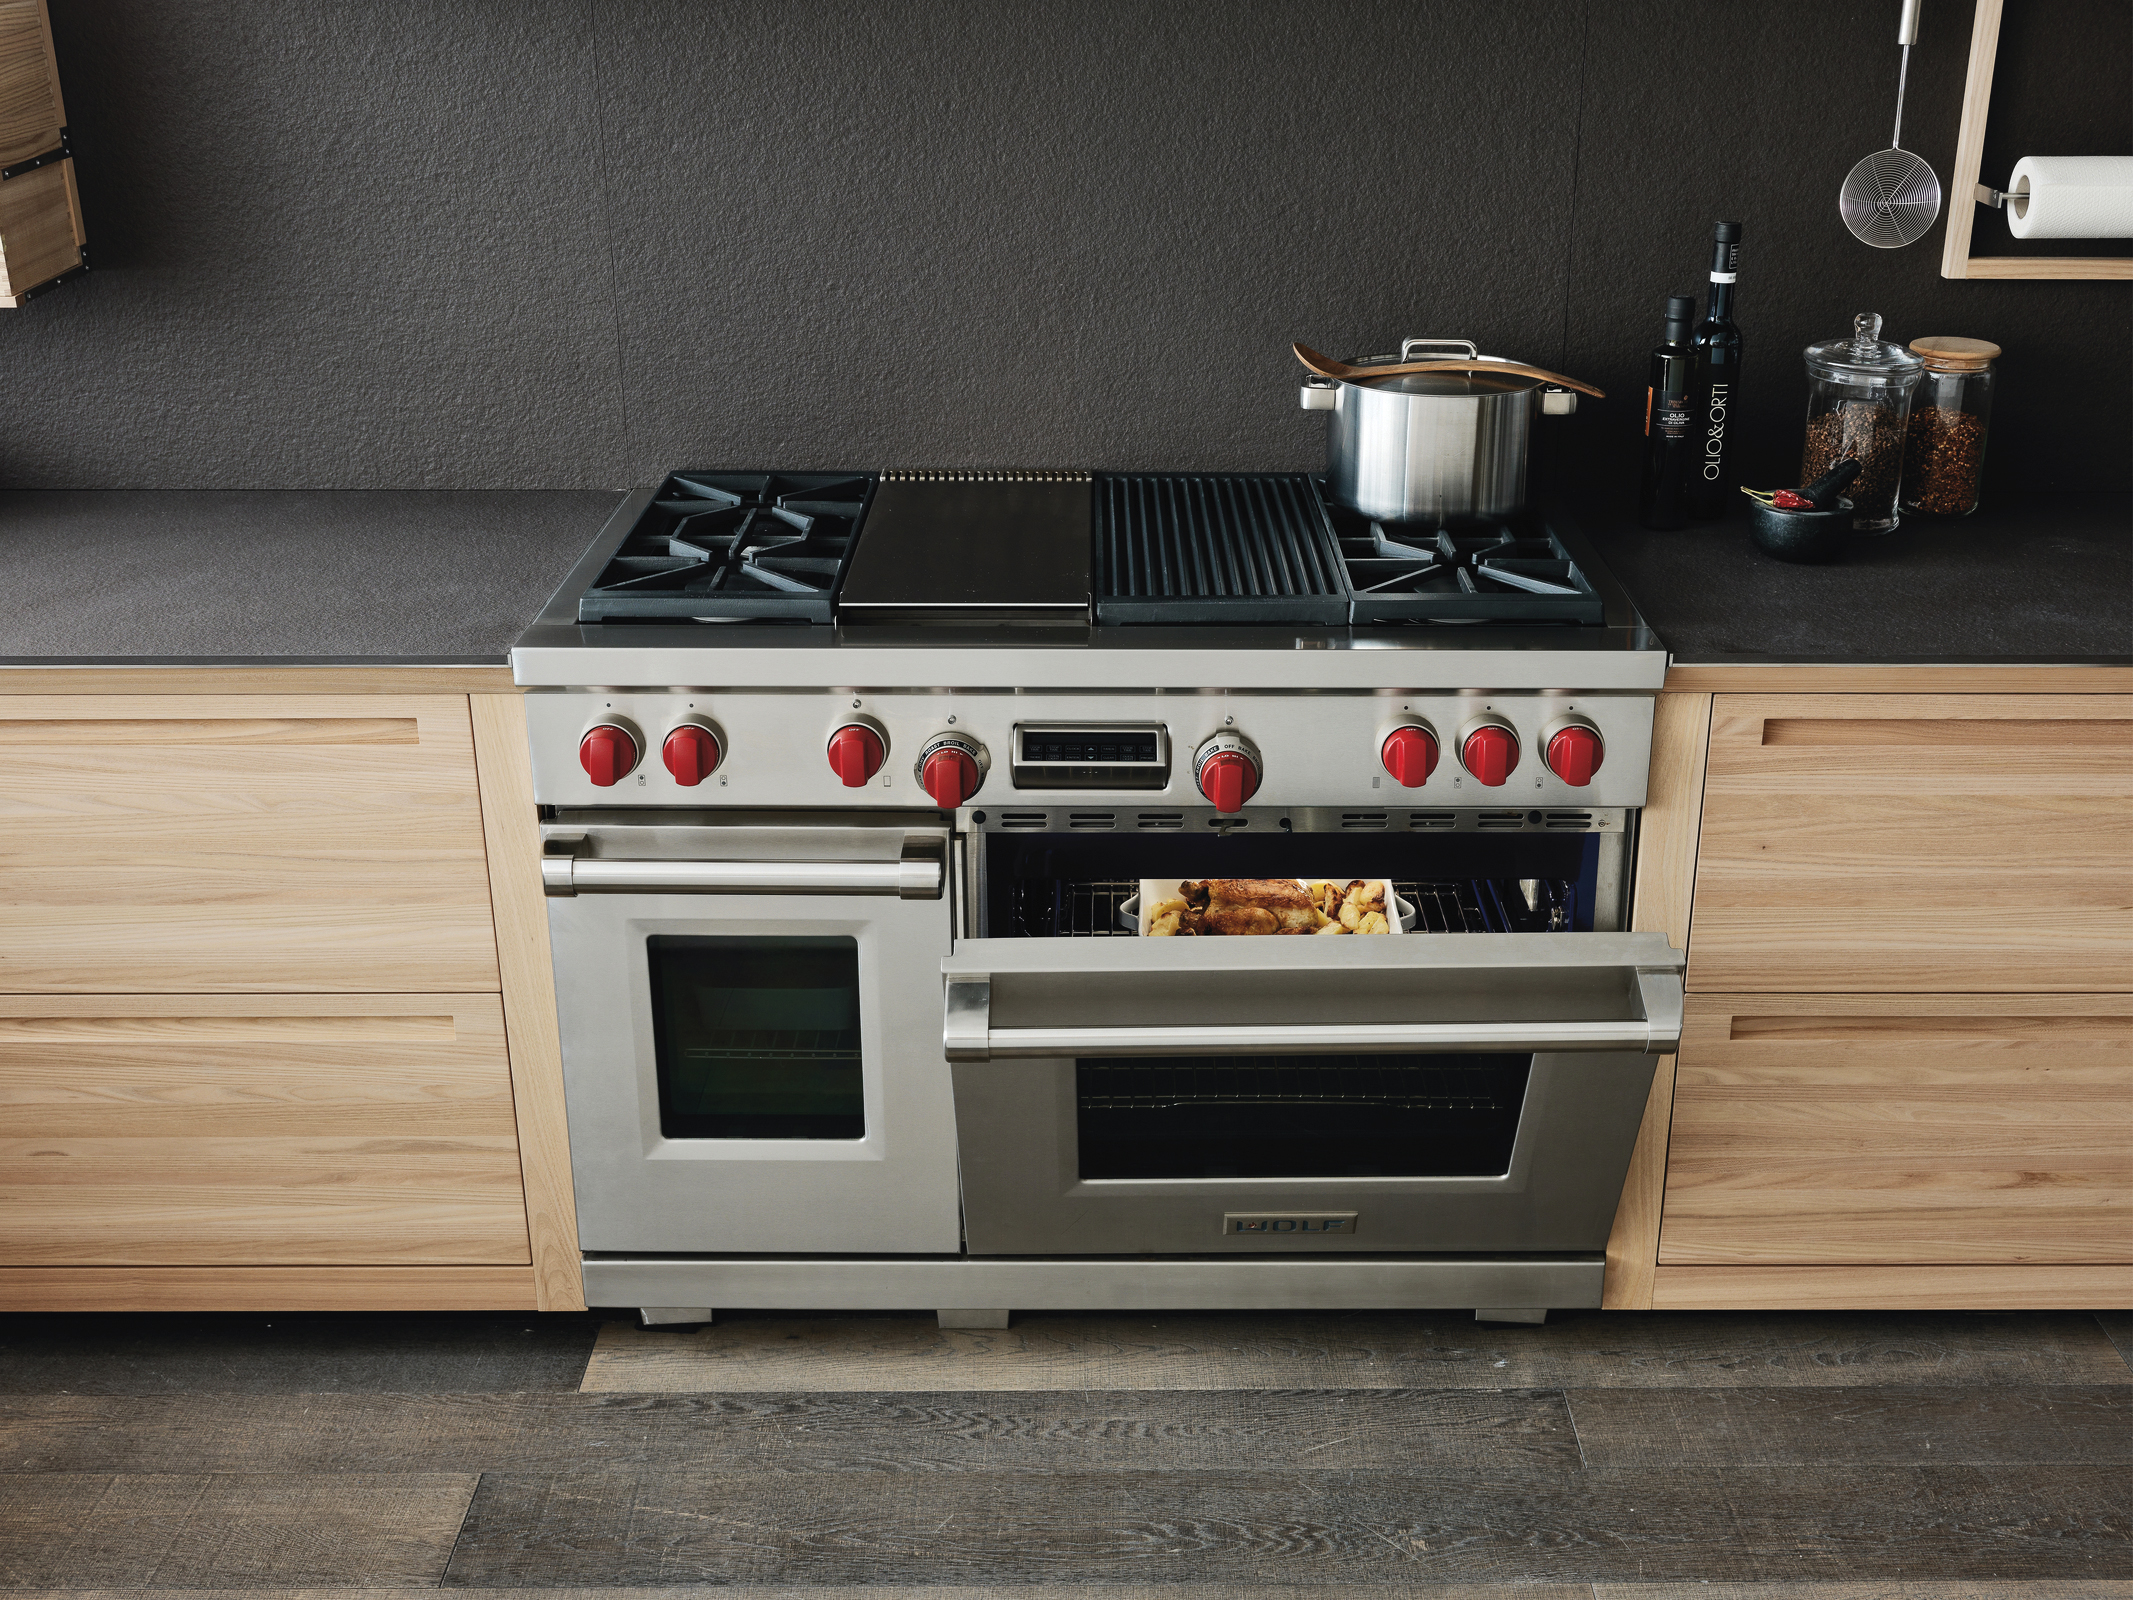 5 - DUAL FUEL RANGE WITH CHARBROILER AND GRIDDLE